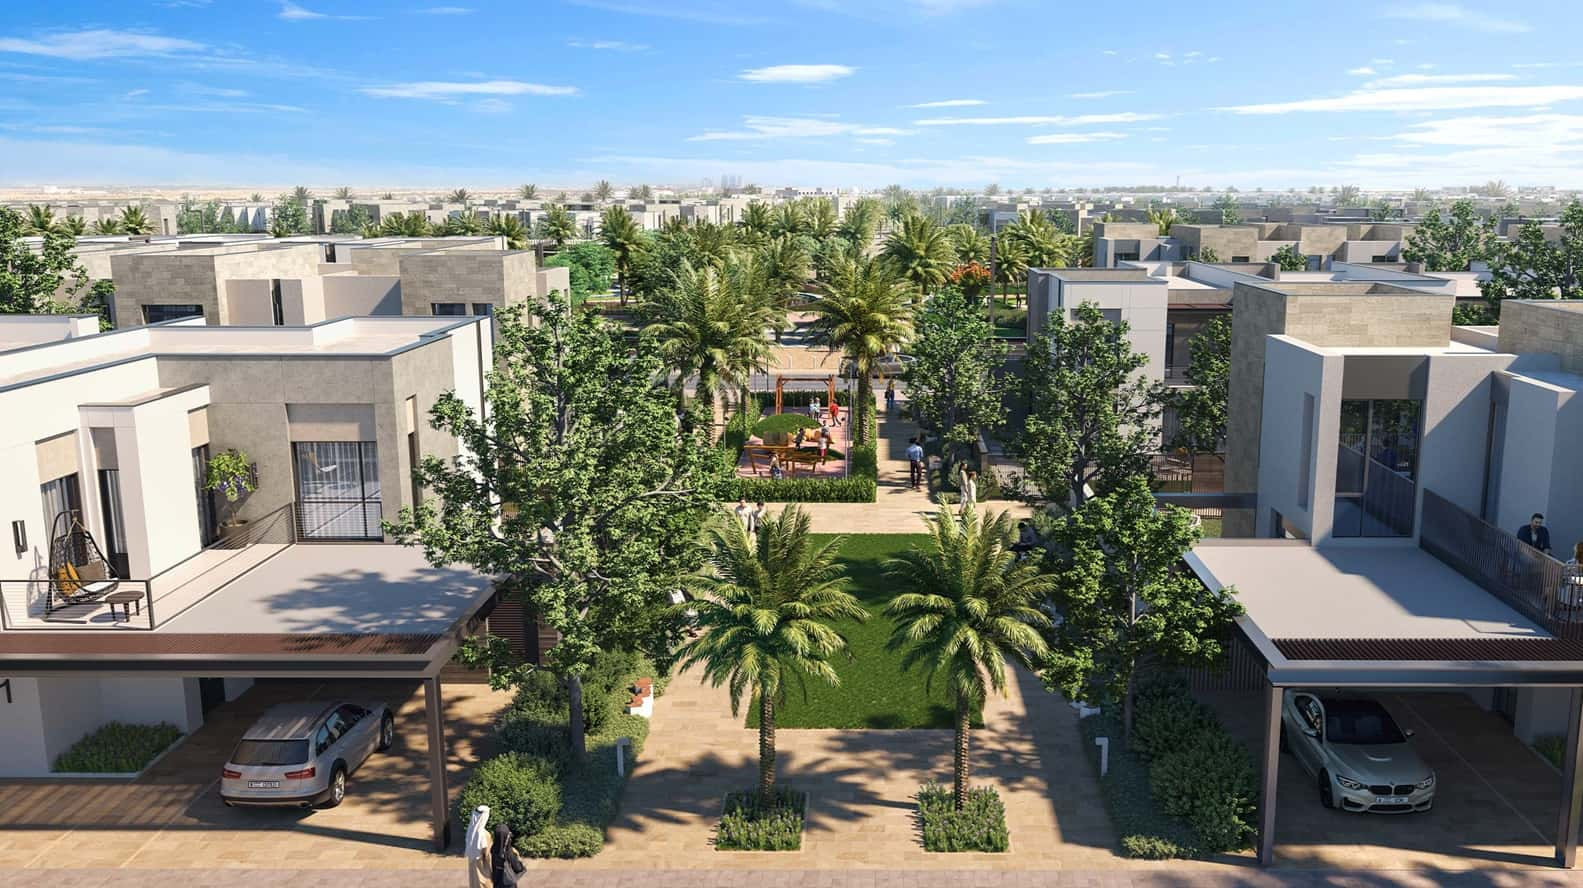 Properties for Sale in Arabian Ranches